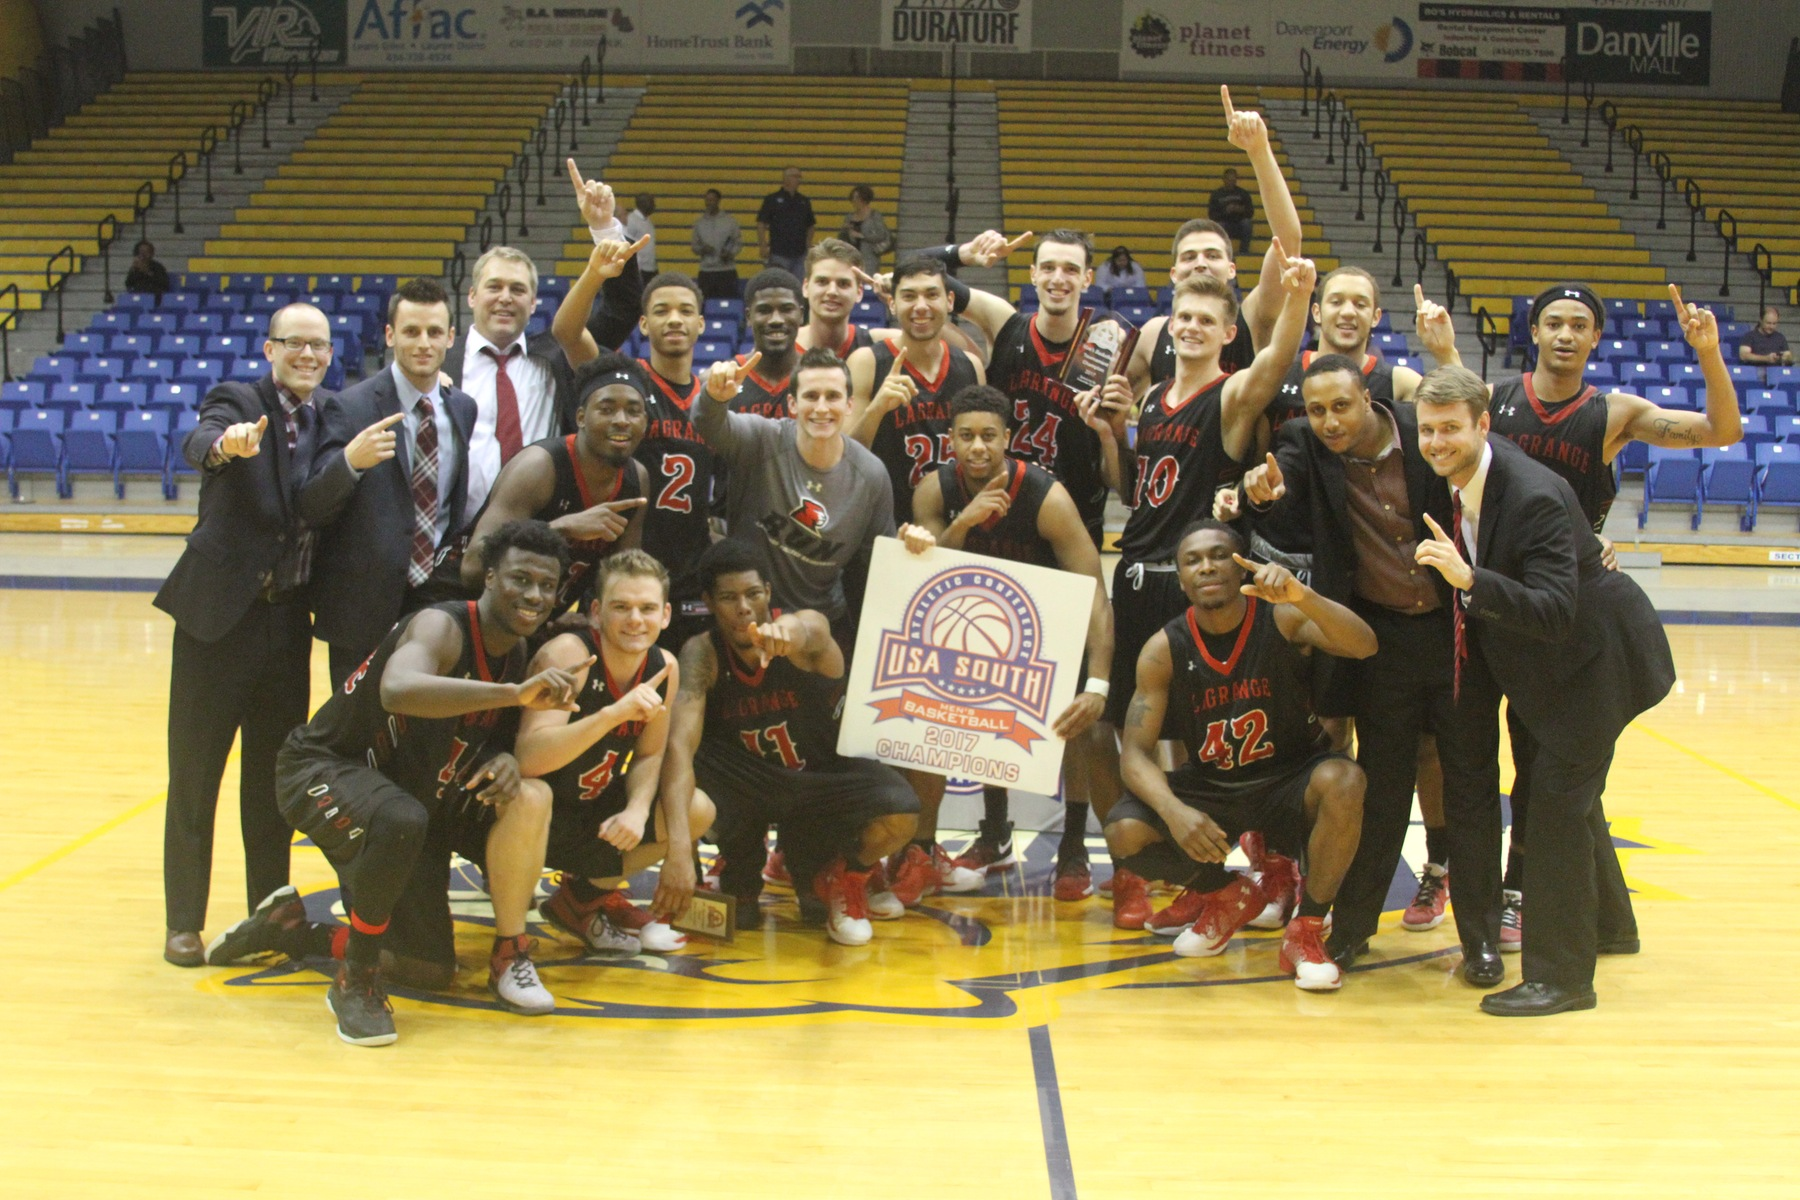 Men's Basketball: CHAMPIONS! Panthers roll past Methodist 75-56 to capture USA South Tournament title